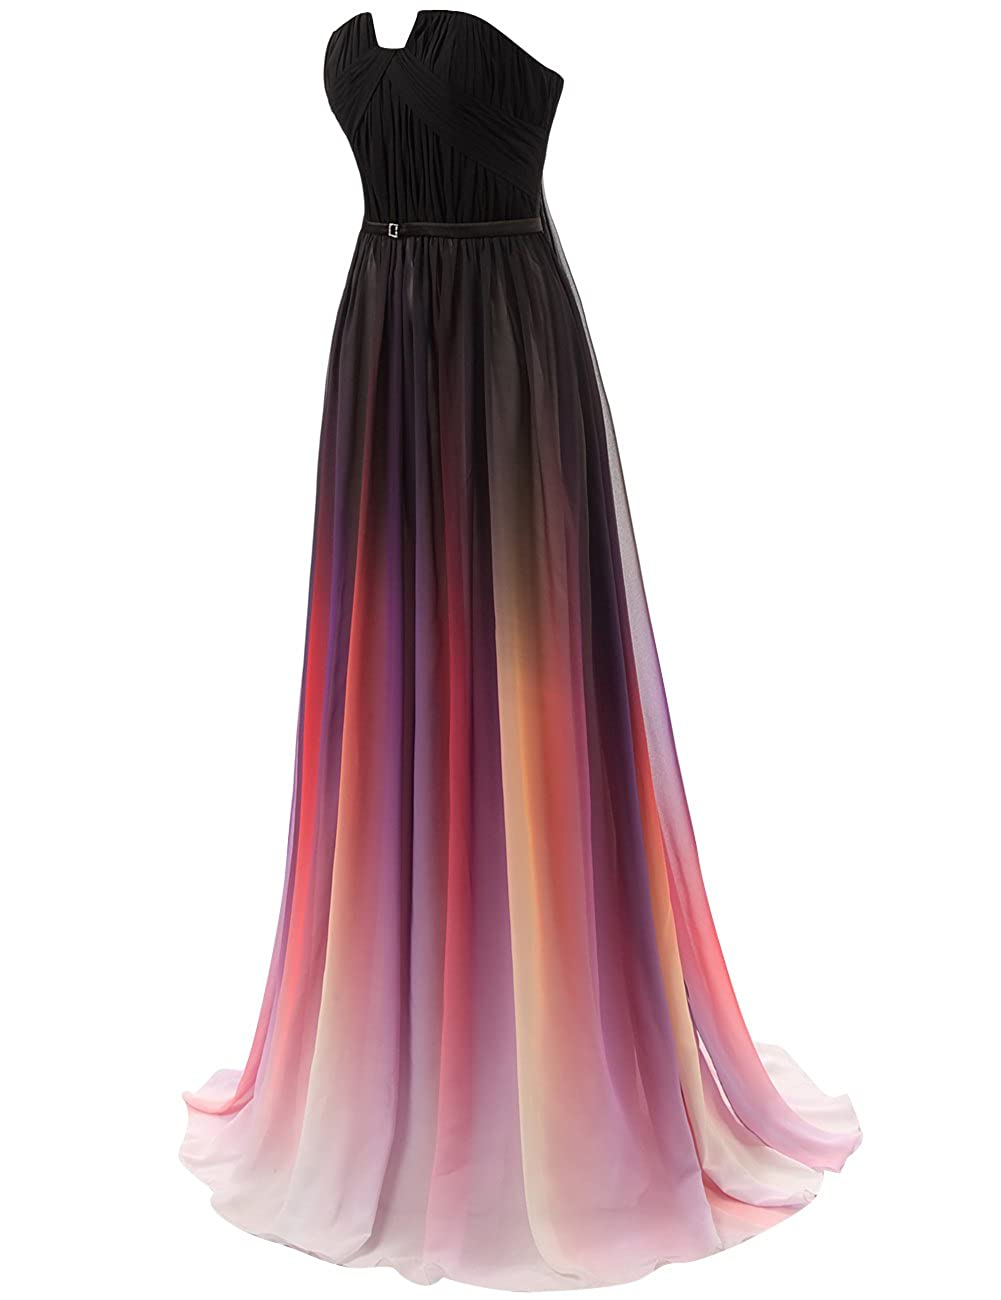 JAEDEN Gradient Prom Dress Formal Evening Gowns Chiffon Long Prom Party Dresses Black US24W: Amazon.co.uk: Clothing